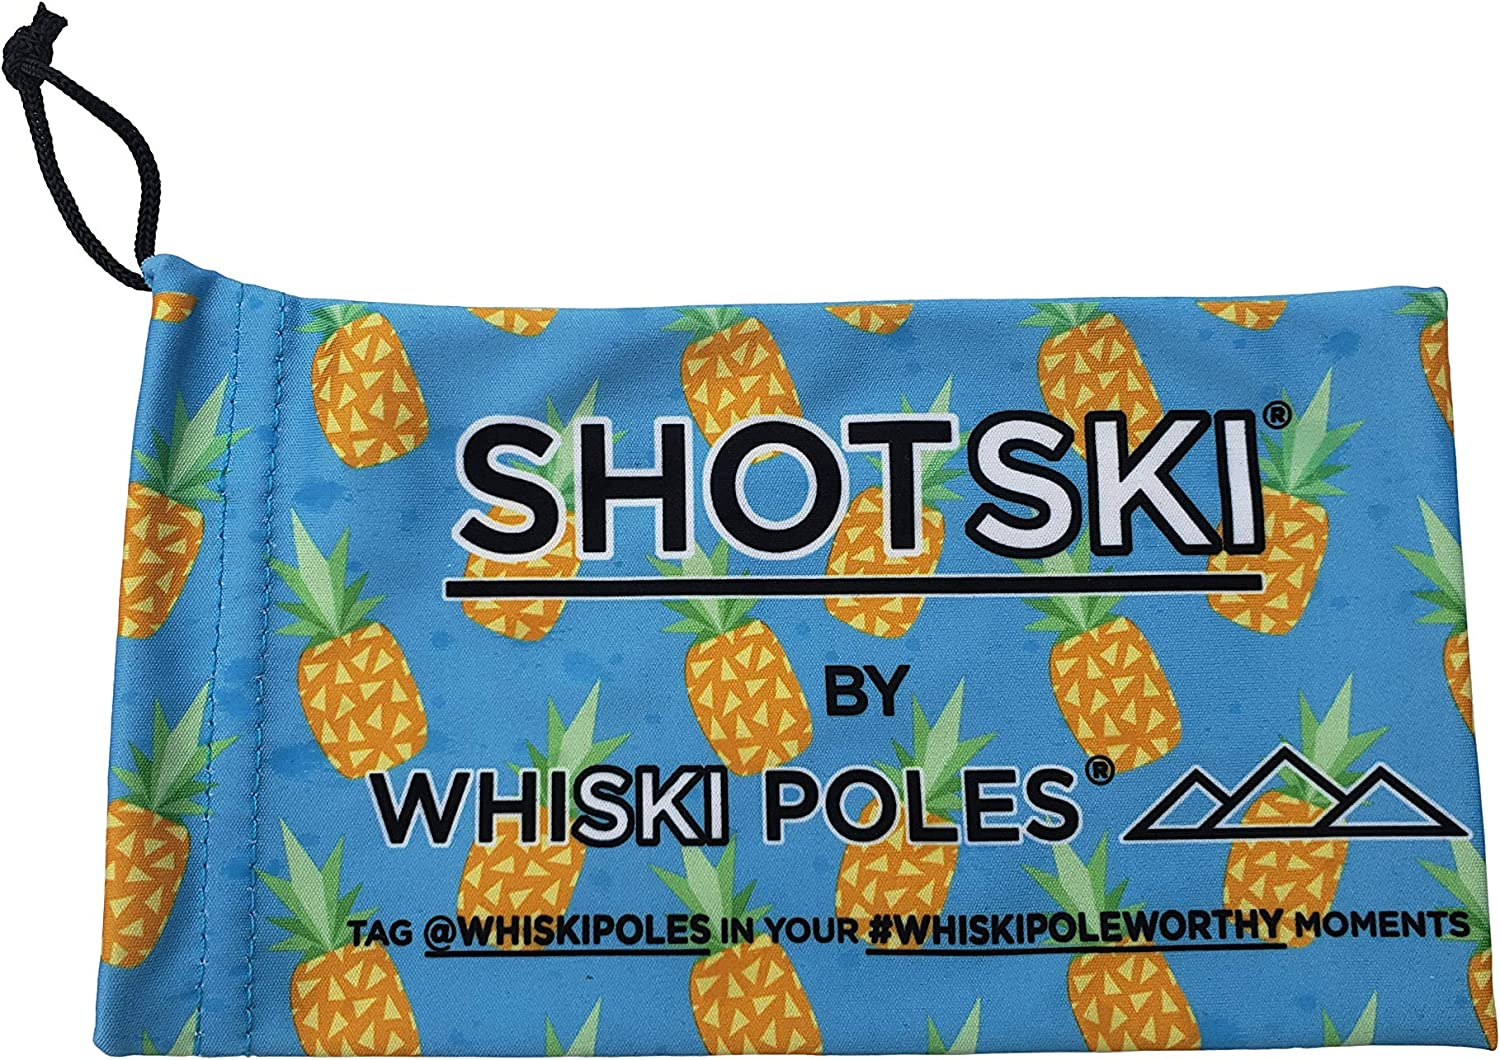 shatterproof Shot Glasses Removable 6 Pack Official SHOTSKI Kit no Tools Required Instantly Turn Your Everyday Gear into a Shot ski Apres Ski Gift installs in Seconds